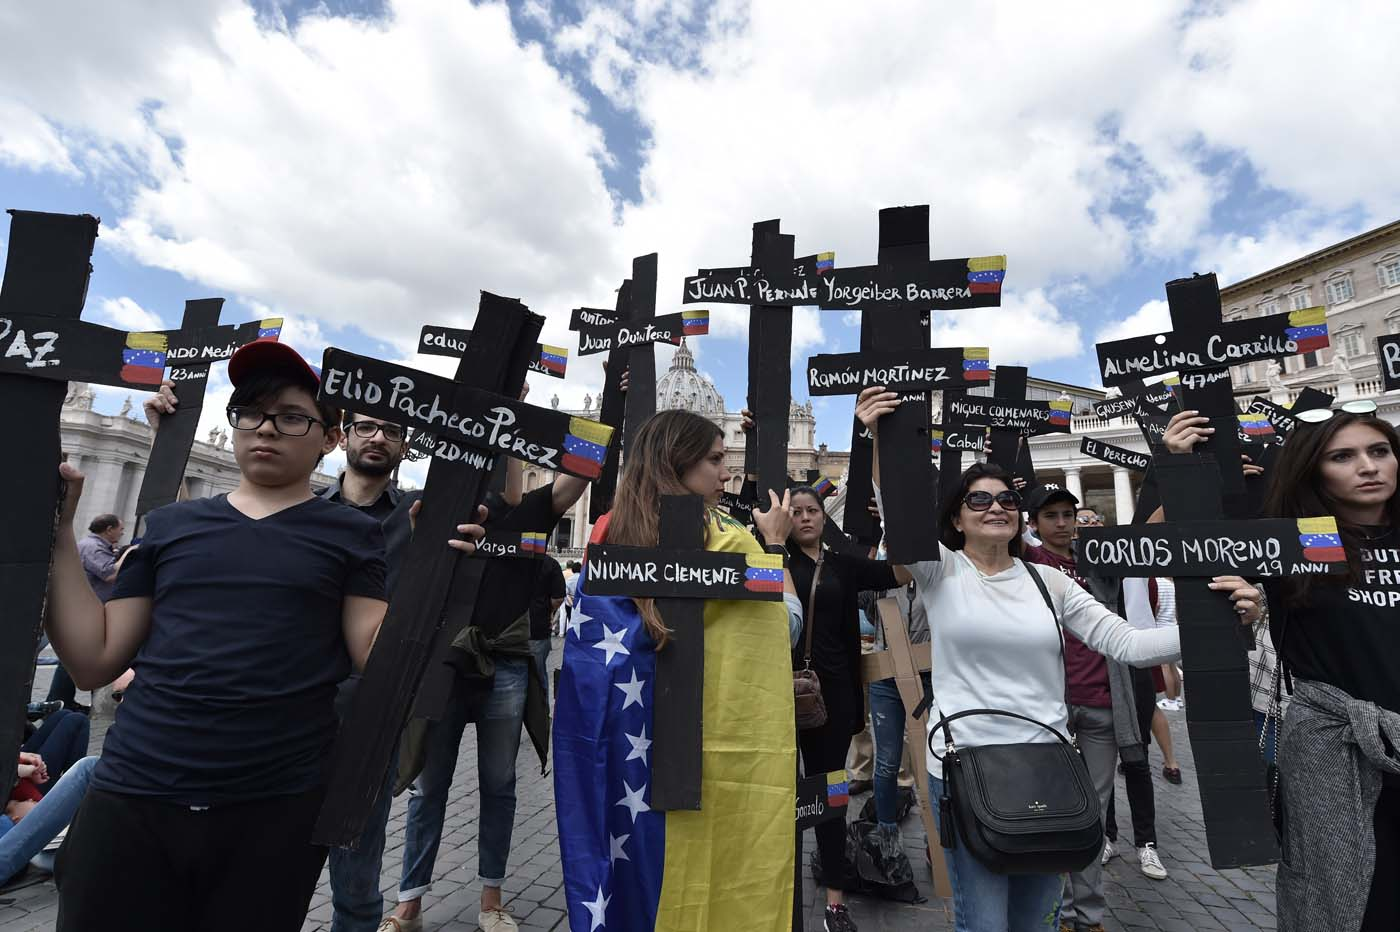 """Members of the Venezuelian community hold black crosses with names of victims of clashes with police during protests against Venezuela's President Nicolas Maduro, on May 7, 2017 at St Peter's square before the Regina Coeli prayer of Pope Francis in Vatican. Pope Francis last week made a heartfelt appeal for """"negotiated solutions"""" to end the violence in crisis-torn Venezuela for the sake of an """"exhausted population"""". The death toll since April -- when the protests intensified after Maduro's administration and the courts stepped up efforts to undermine the opposition -- is at least 36, according to prosecutors, with hundreds more injured. / AFP PHOTO / TIZIANA FABI"""